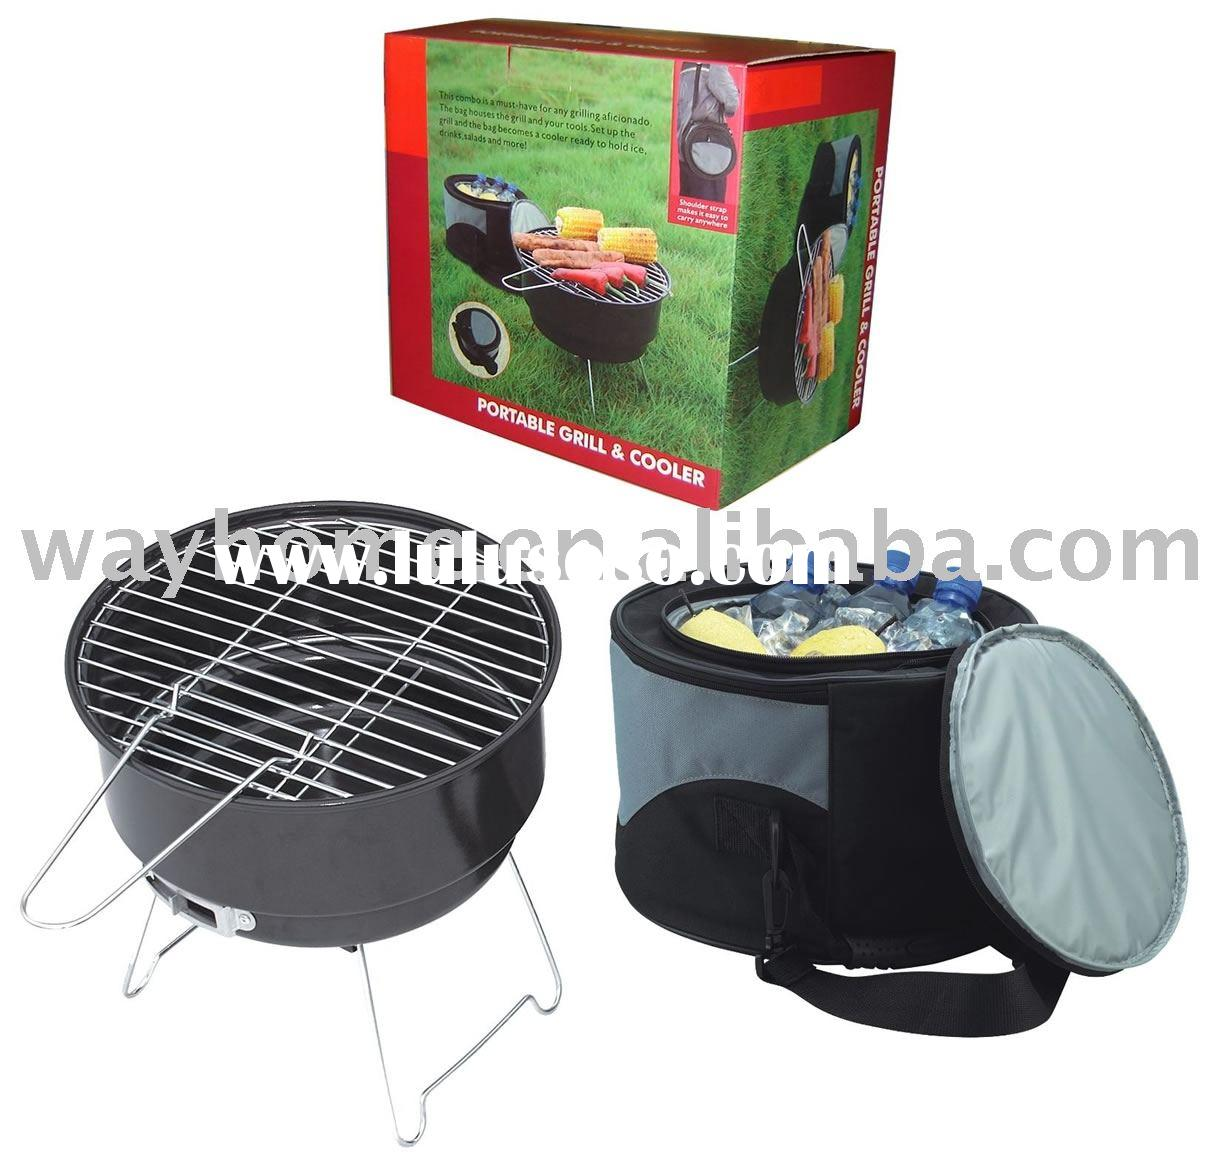 camping hiking hunting fishing picnic outdoor travel adventurer portable grill&cooler,Grill/Cool